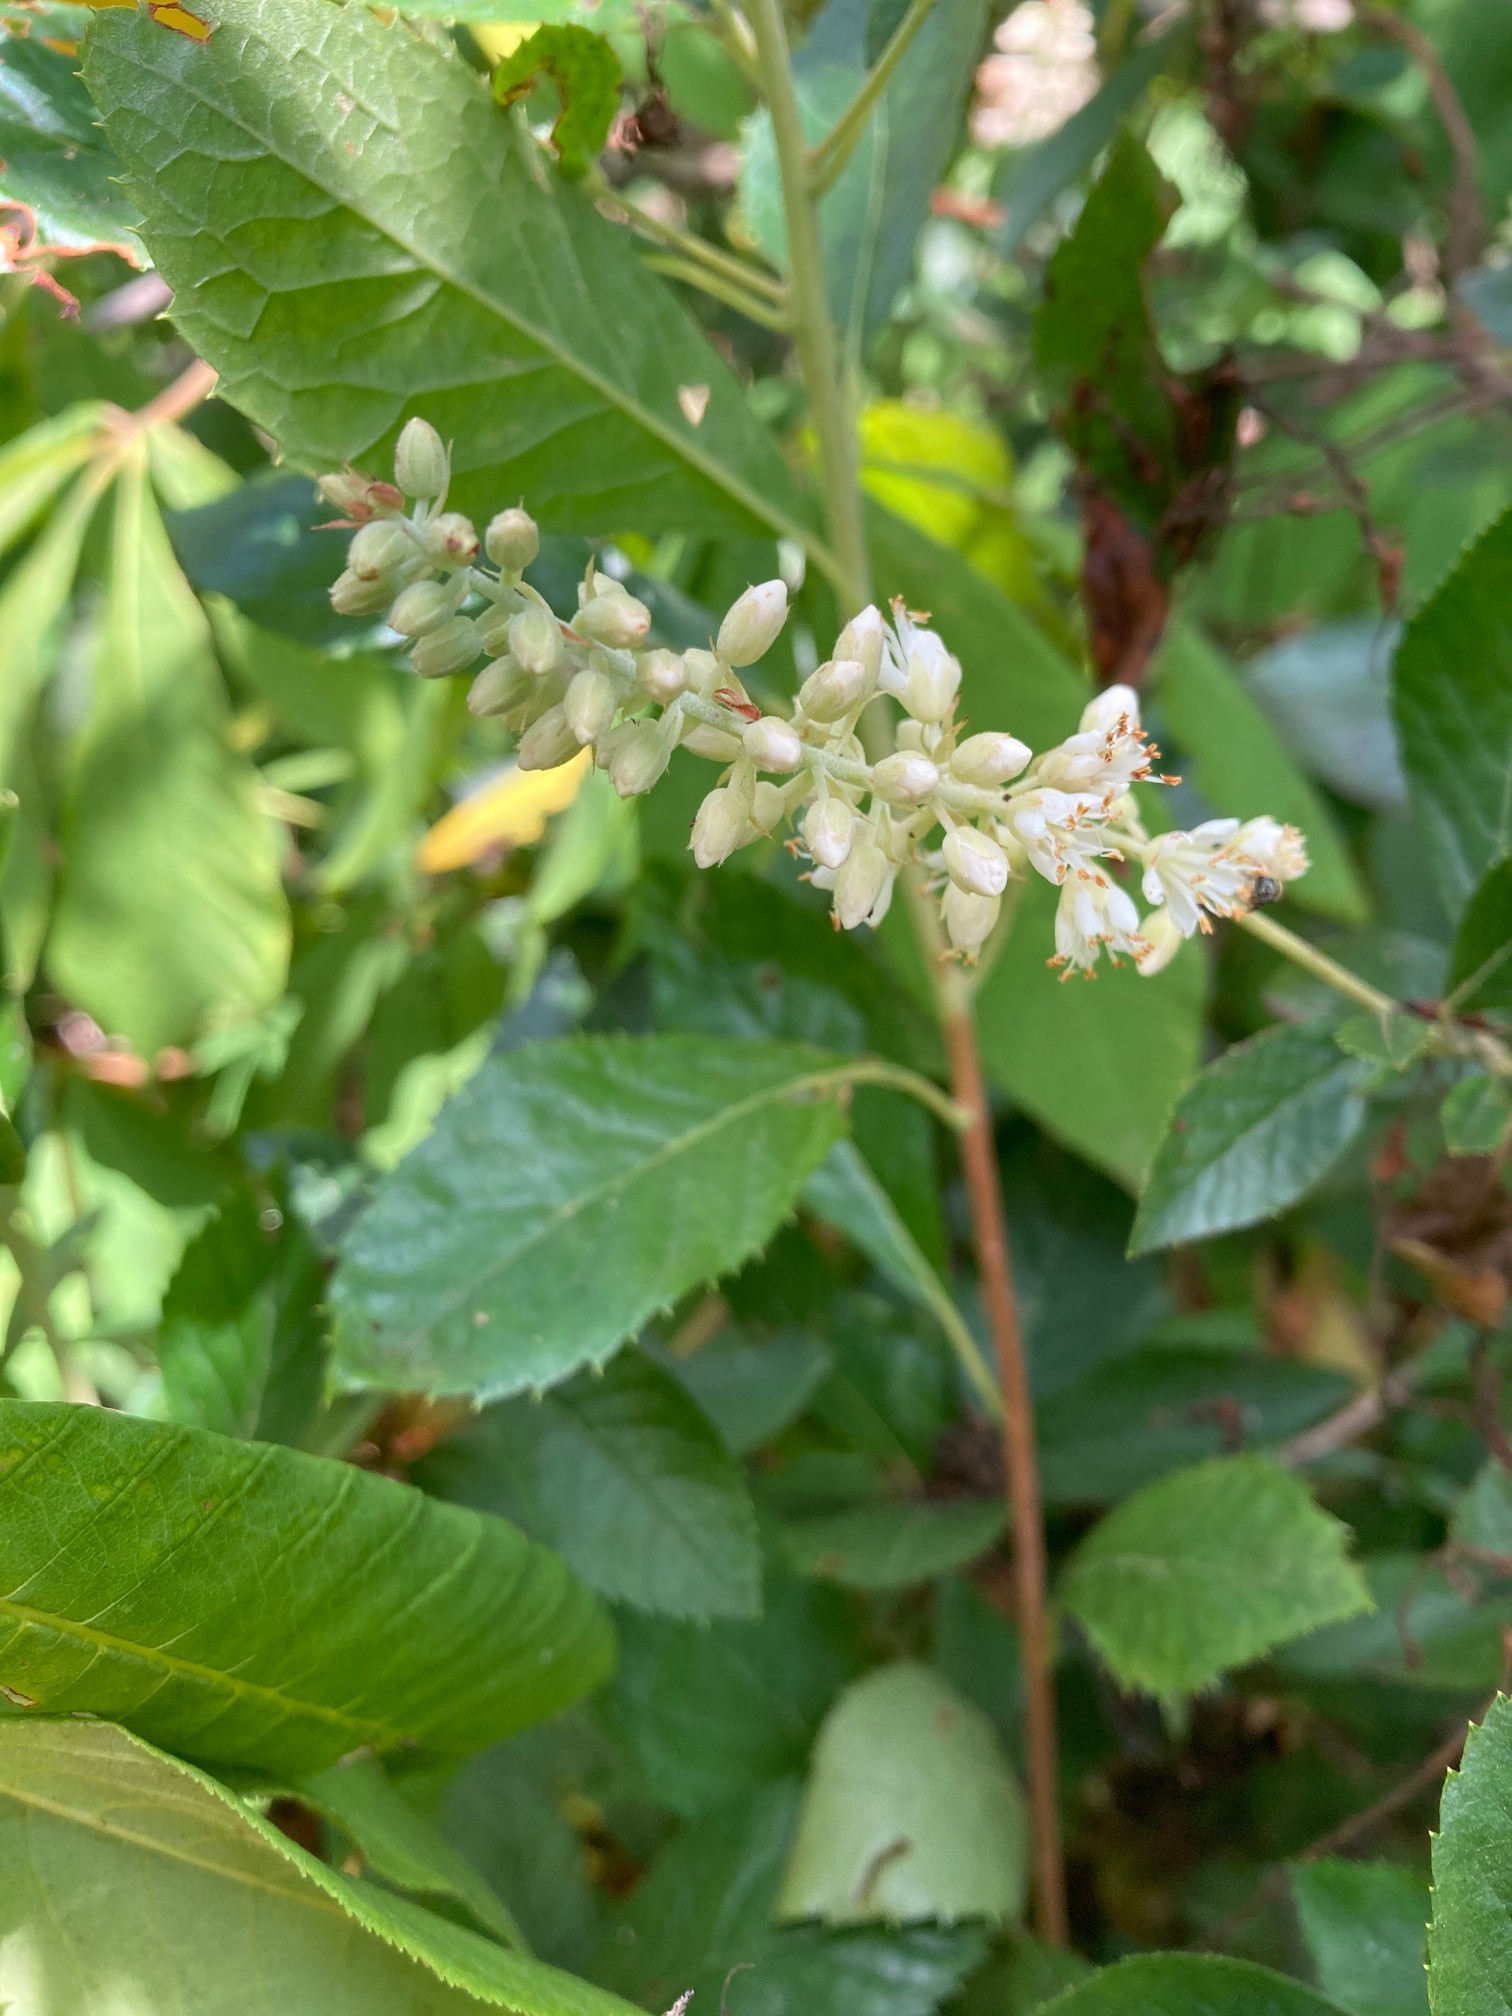 The Scientific Name is Clethra alnifolia. You will likely hear them called Coastal Sweet-pepperbush, Coastal White-alder, Summersweet. This picture shows the Flowering in July with attractive fragrance of Clethra alnifolia